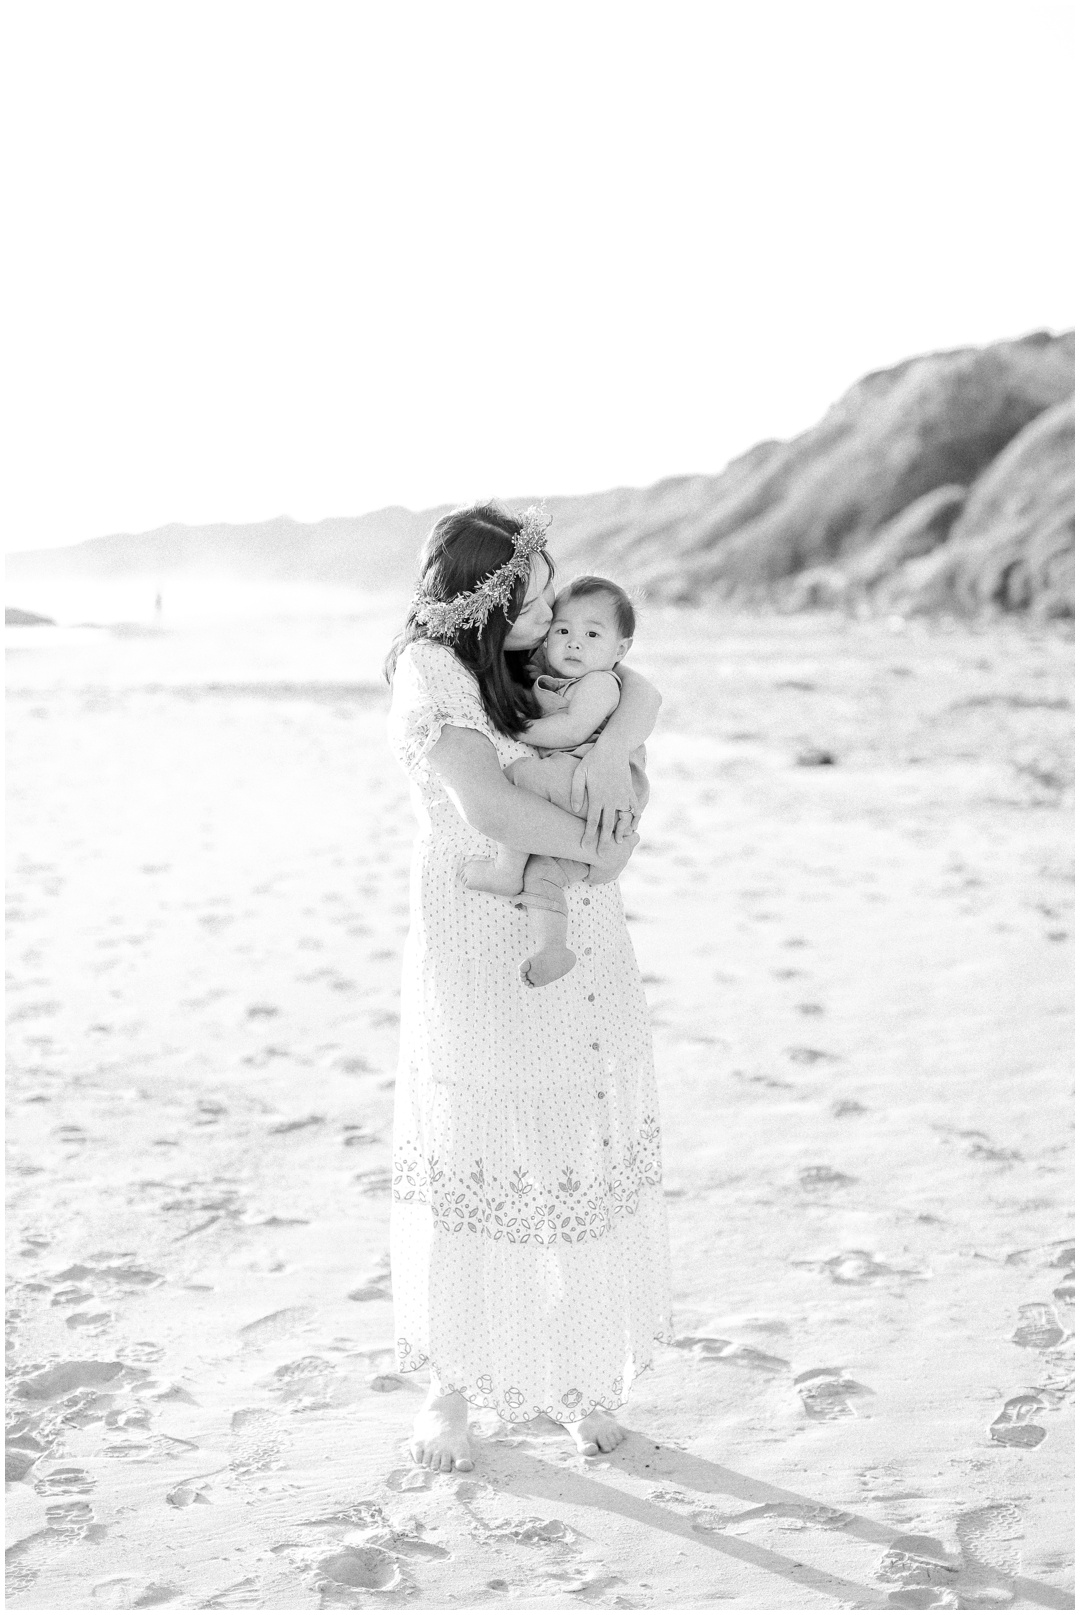 Newport_Beach_Newborn_Light_Airy_Natural_Photographer_Newport_Beach_Photographer_Orange_County_Family_Photographer_Cori_Kleckner_Photography_Huntington_Beach_Photographer_Family_OC_Newborn_Jennifer_Tom_Maternity_Family_session__3448.jpg